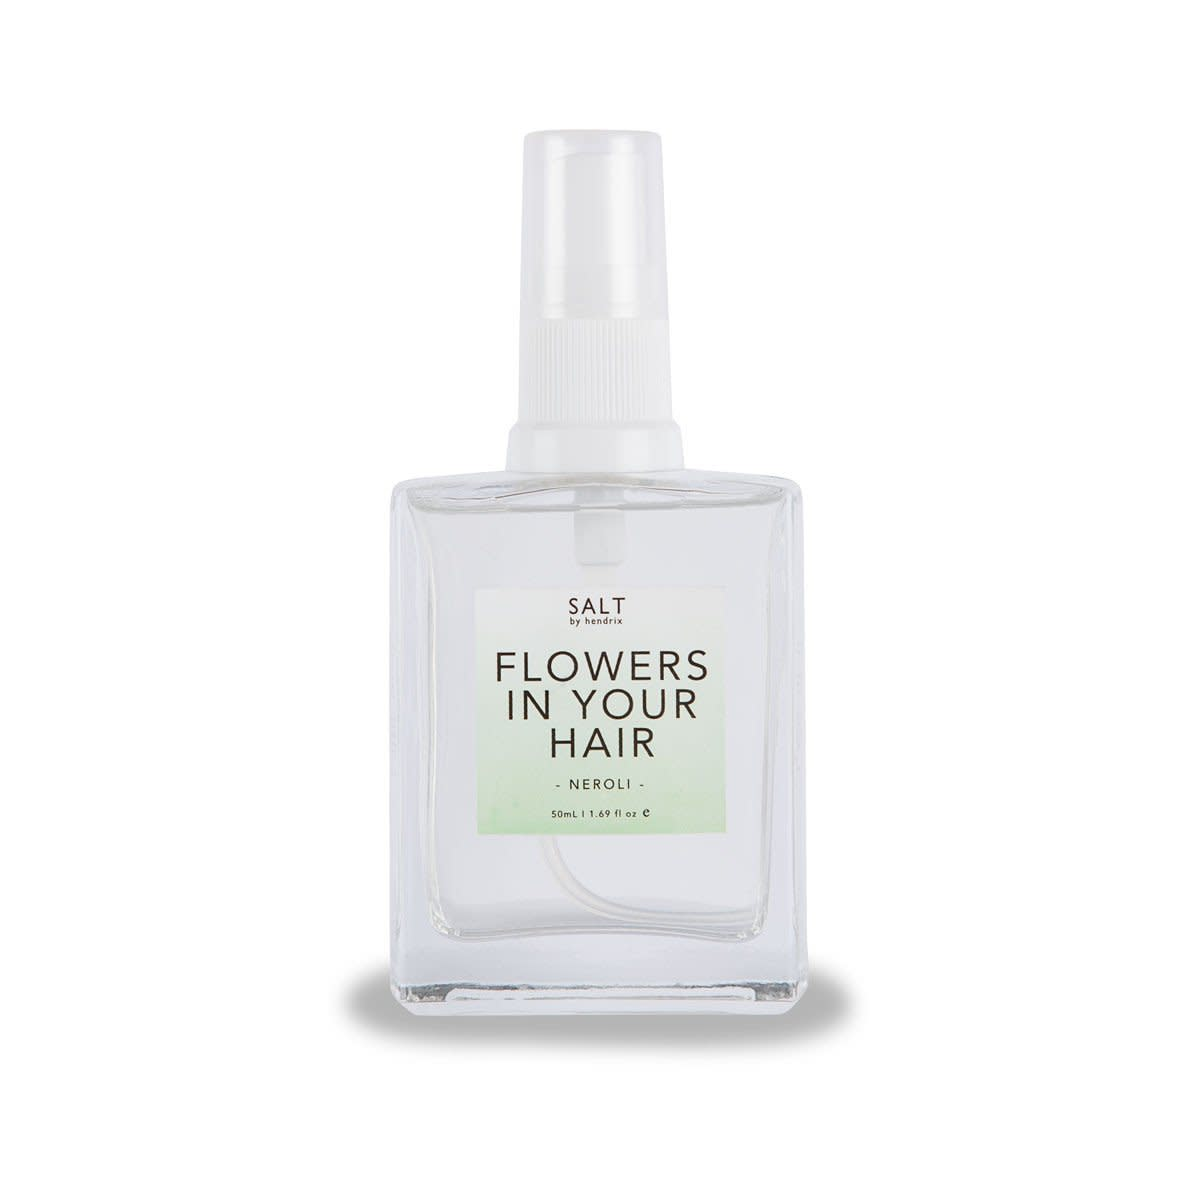 Flowers_in_your_hair_neroli